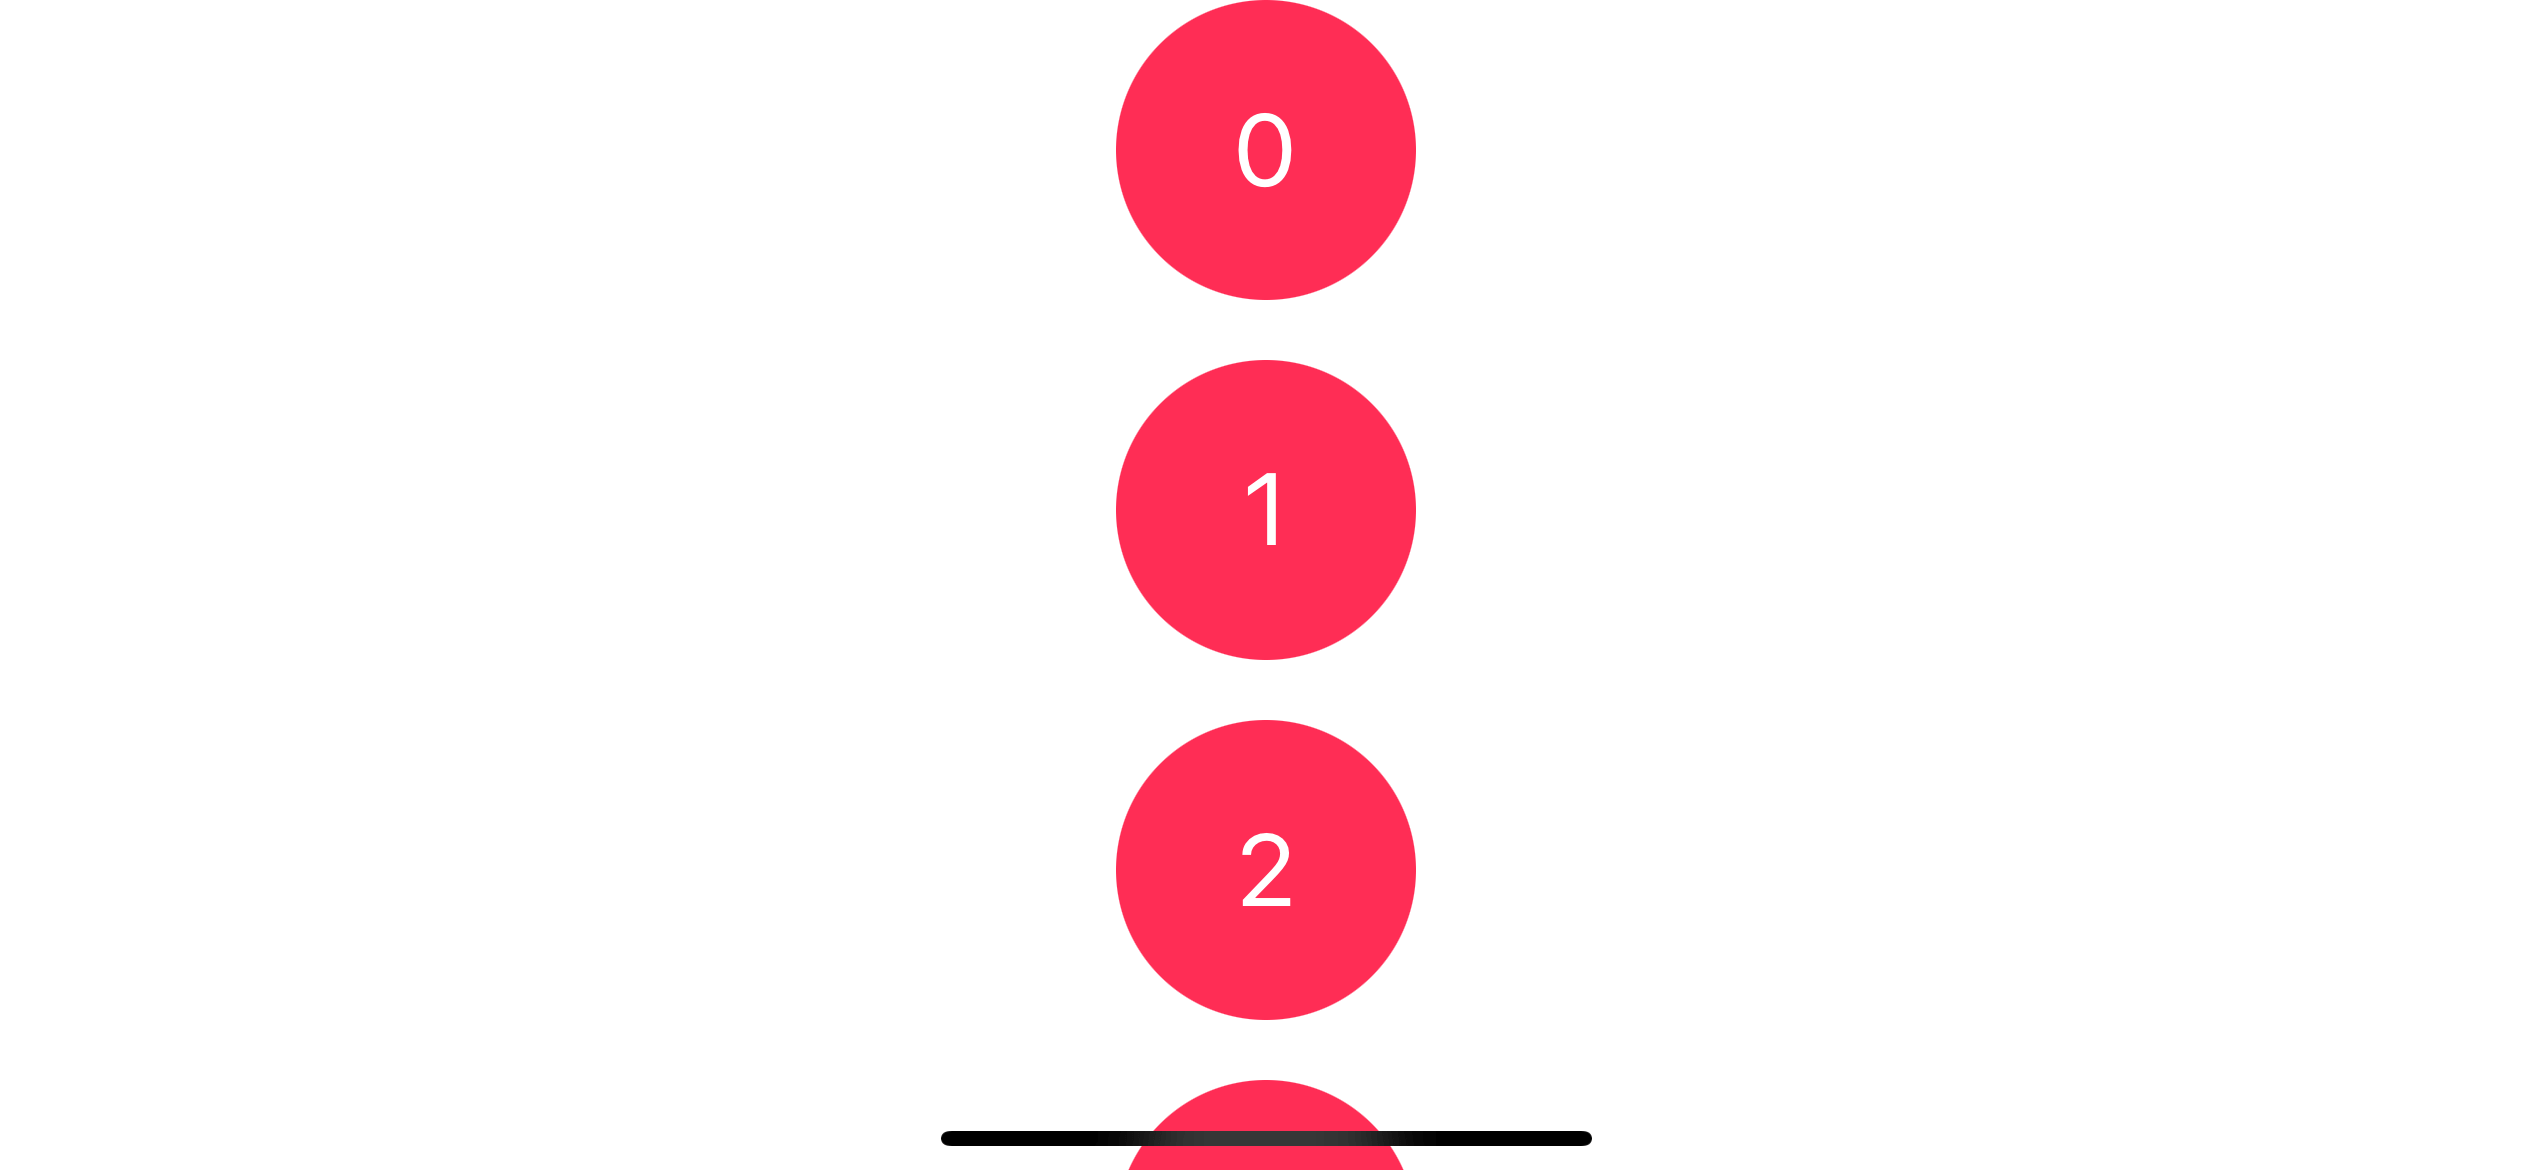 By default, the scroll view will create with a vertical scrolling direction.